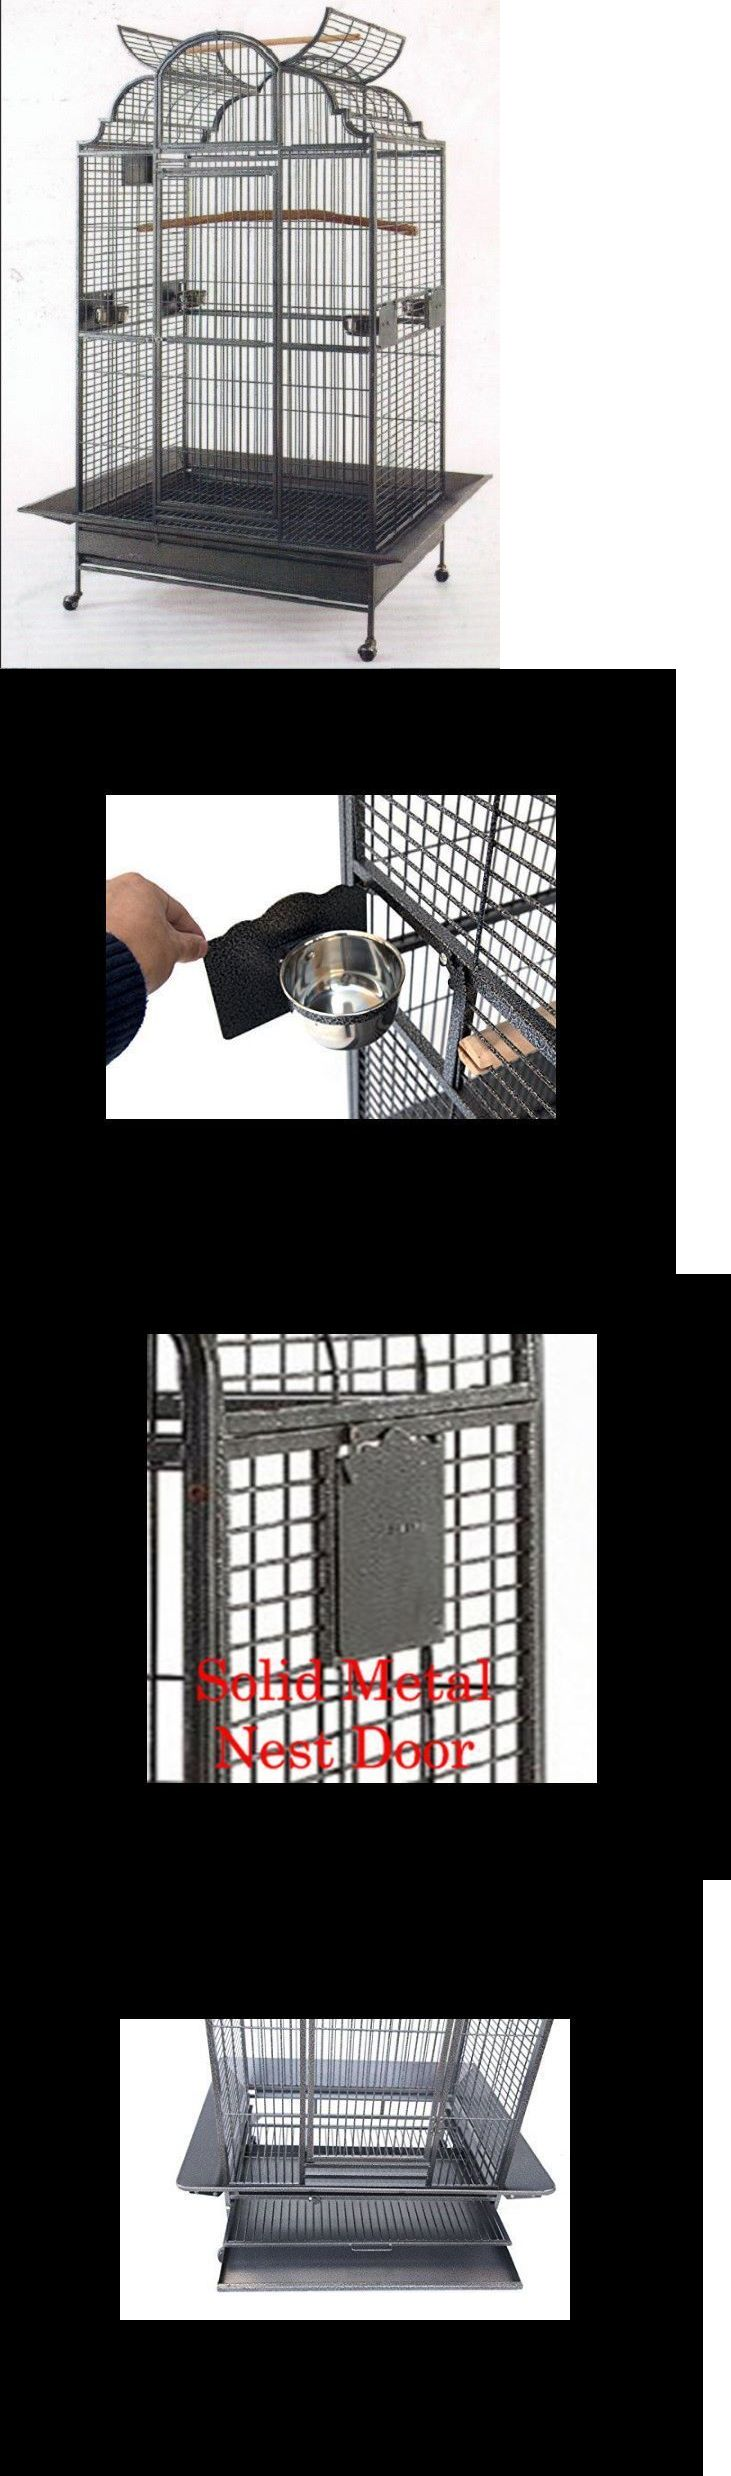 Cages 46289: Extra Large Bird Cage Parrot Decorative Metal Macaw Playtop Wrought Iron Cockato -> BUY IT NOW ONLY: $179.99 on eBay!